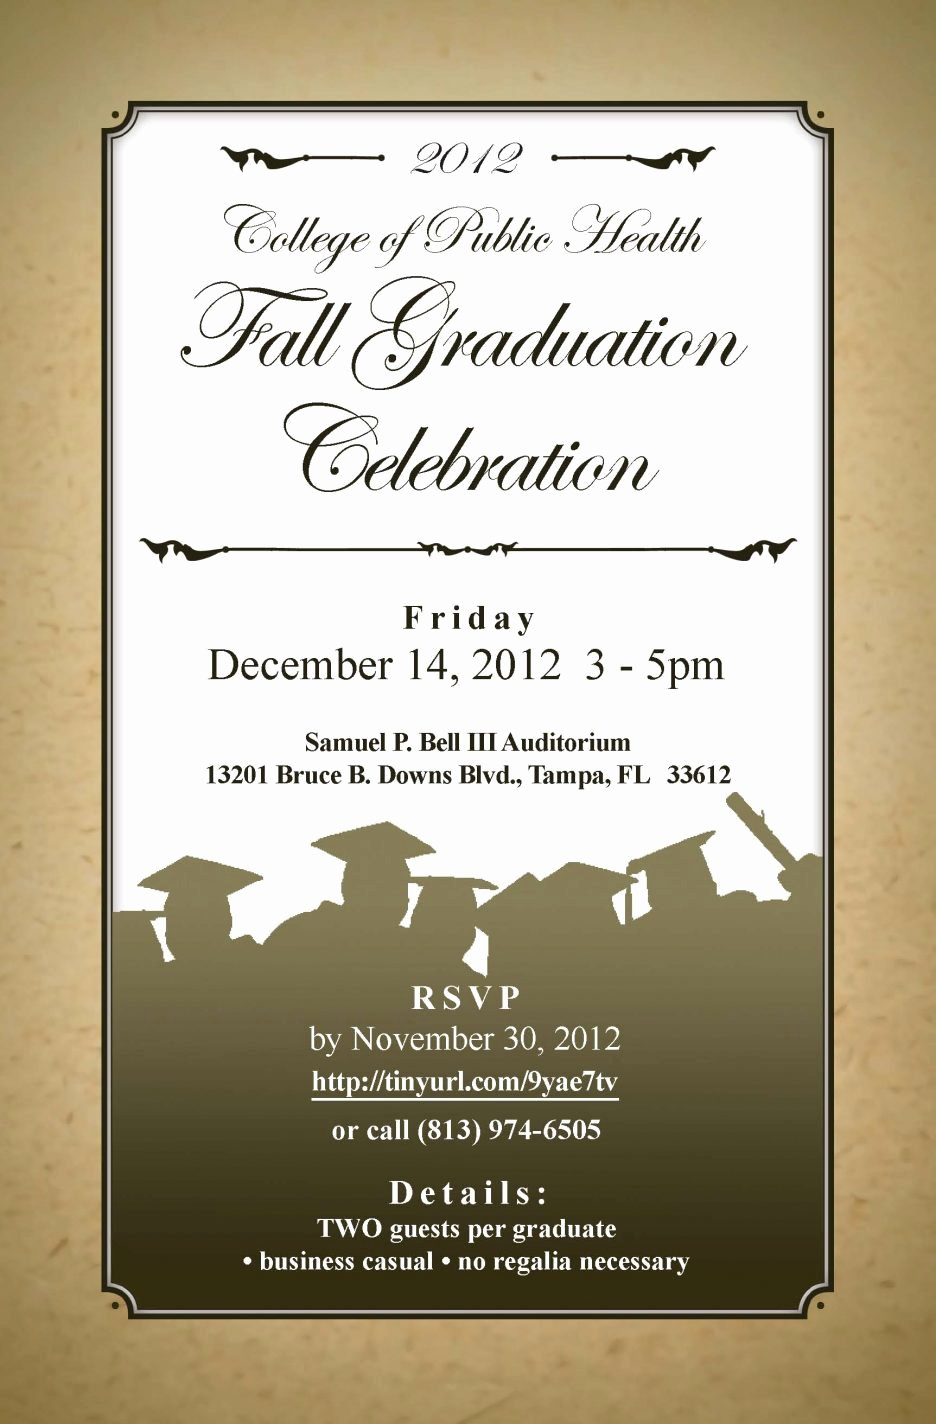 Graduation Dinner Invitation Template Elegant Graduation Dinner Invitation